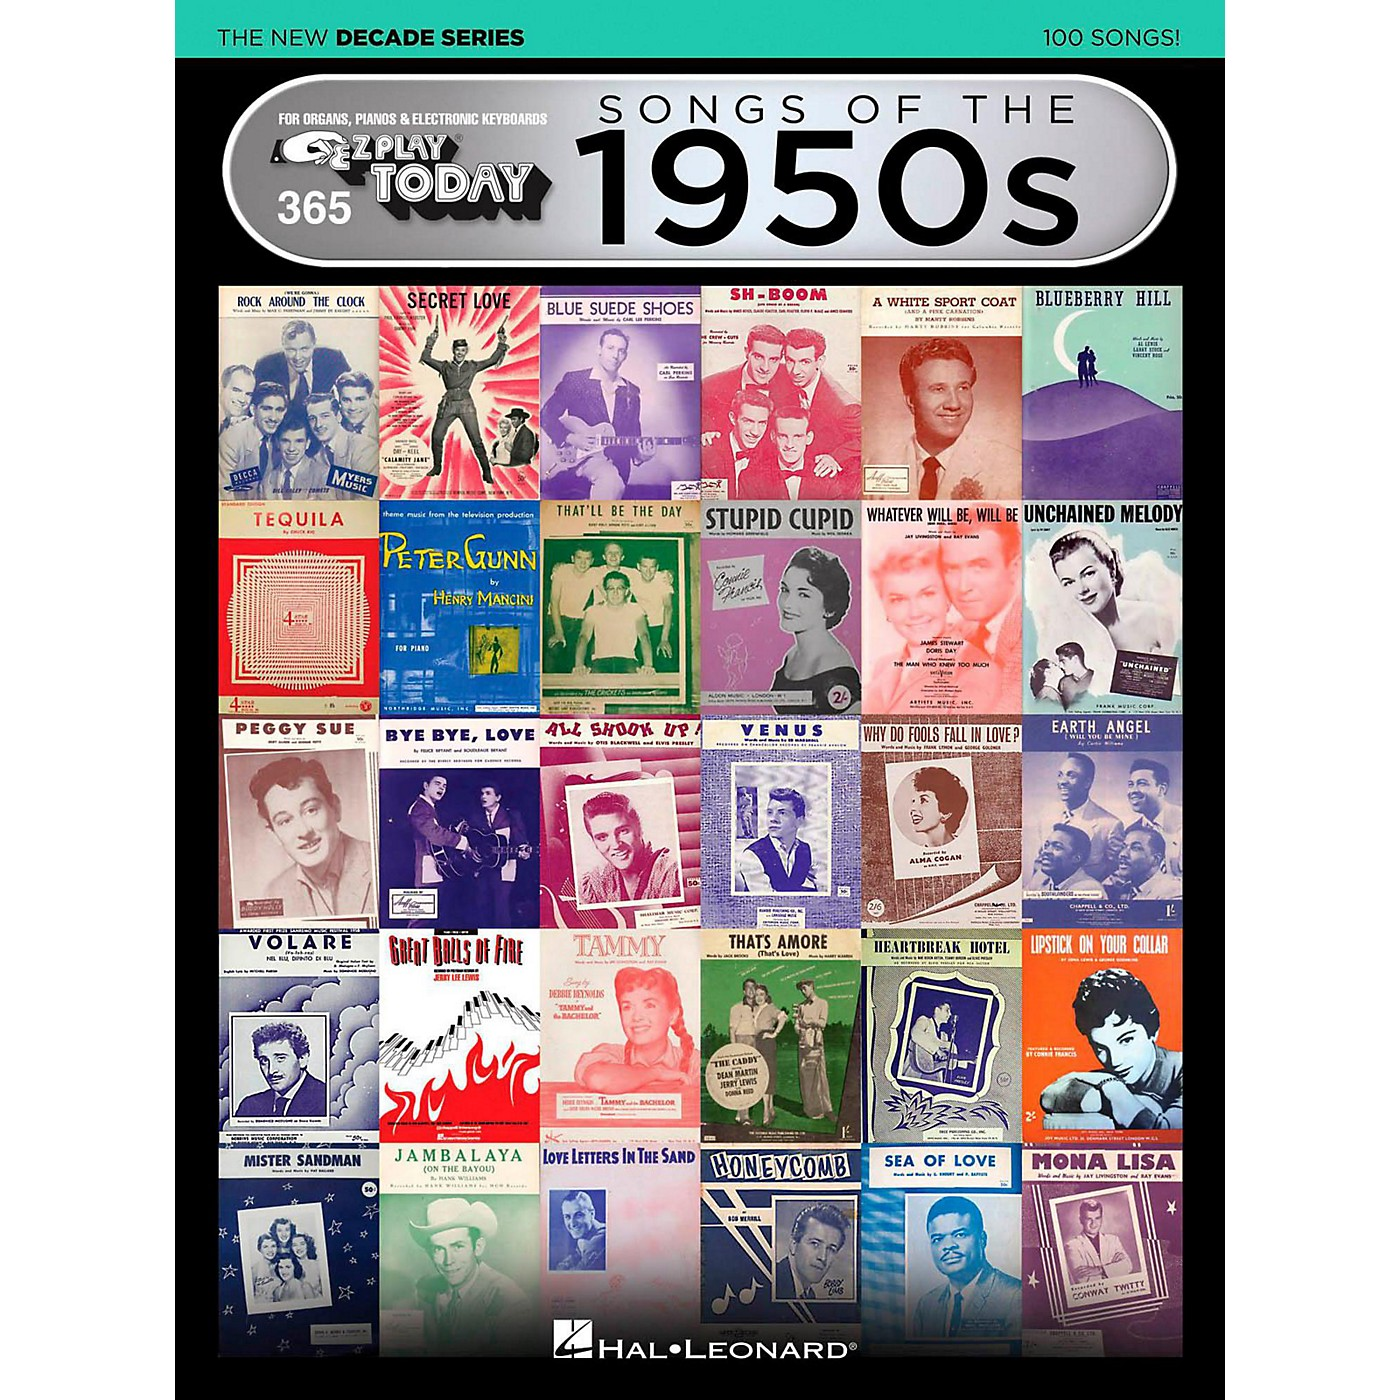 Hal Leonard Songs Of The 1950s - The New Decade Series E-Z Play Today Volume 365 thumbnail